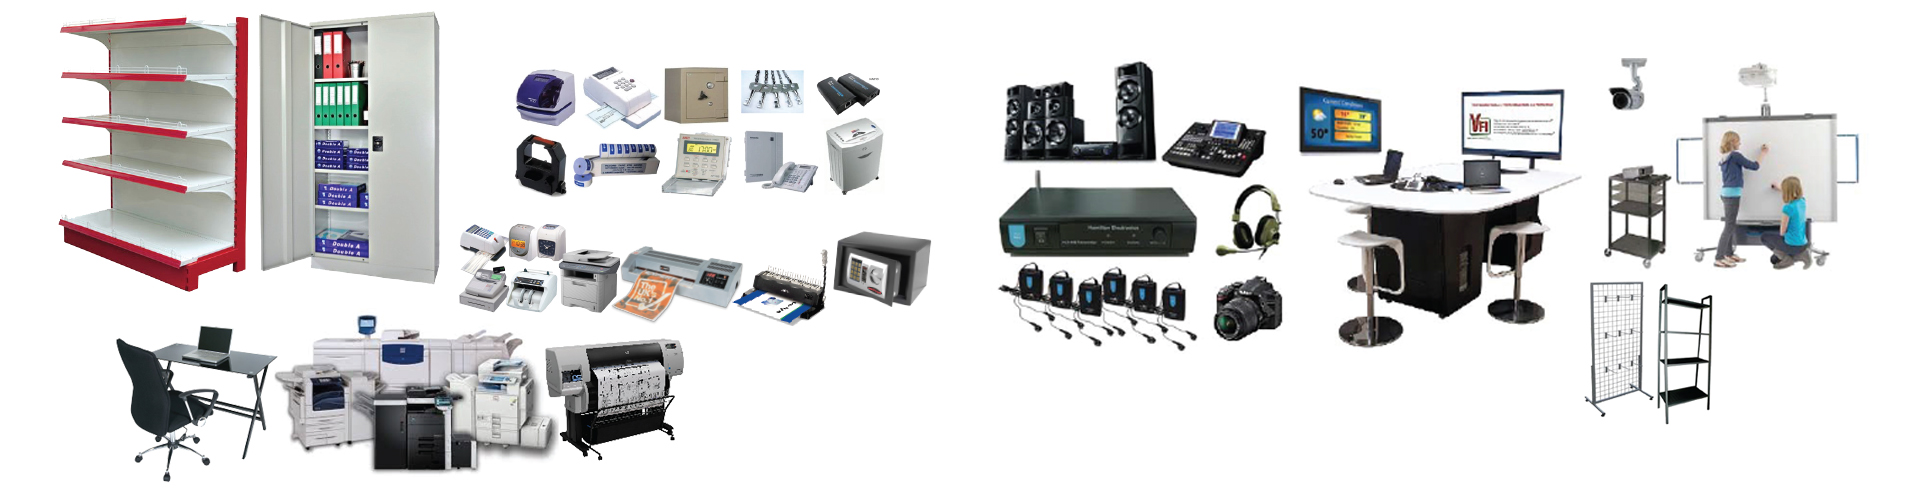 retech-office-equipment-audio